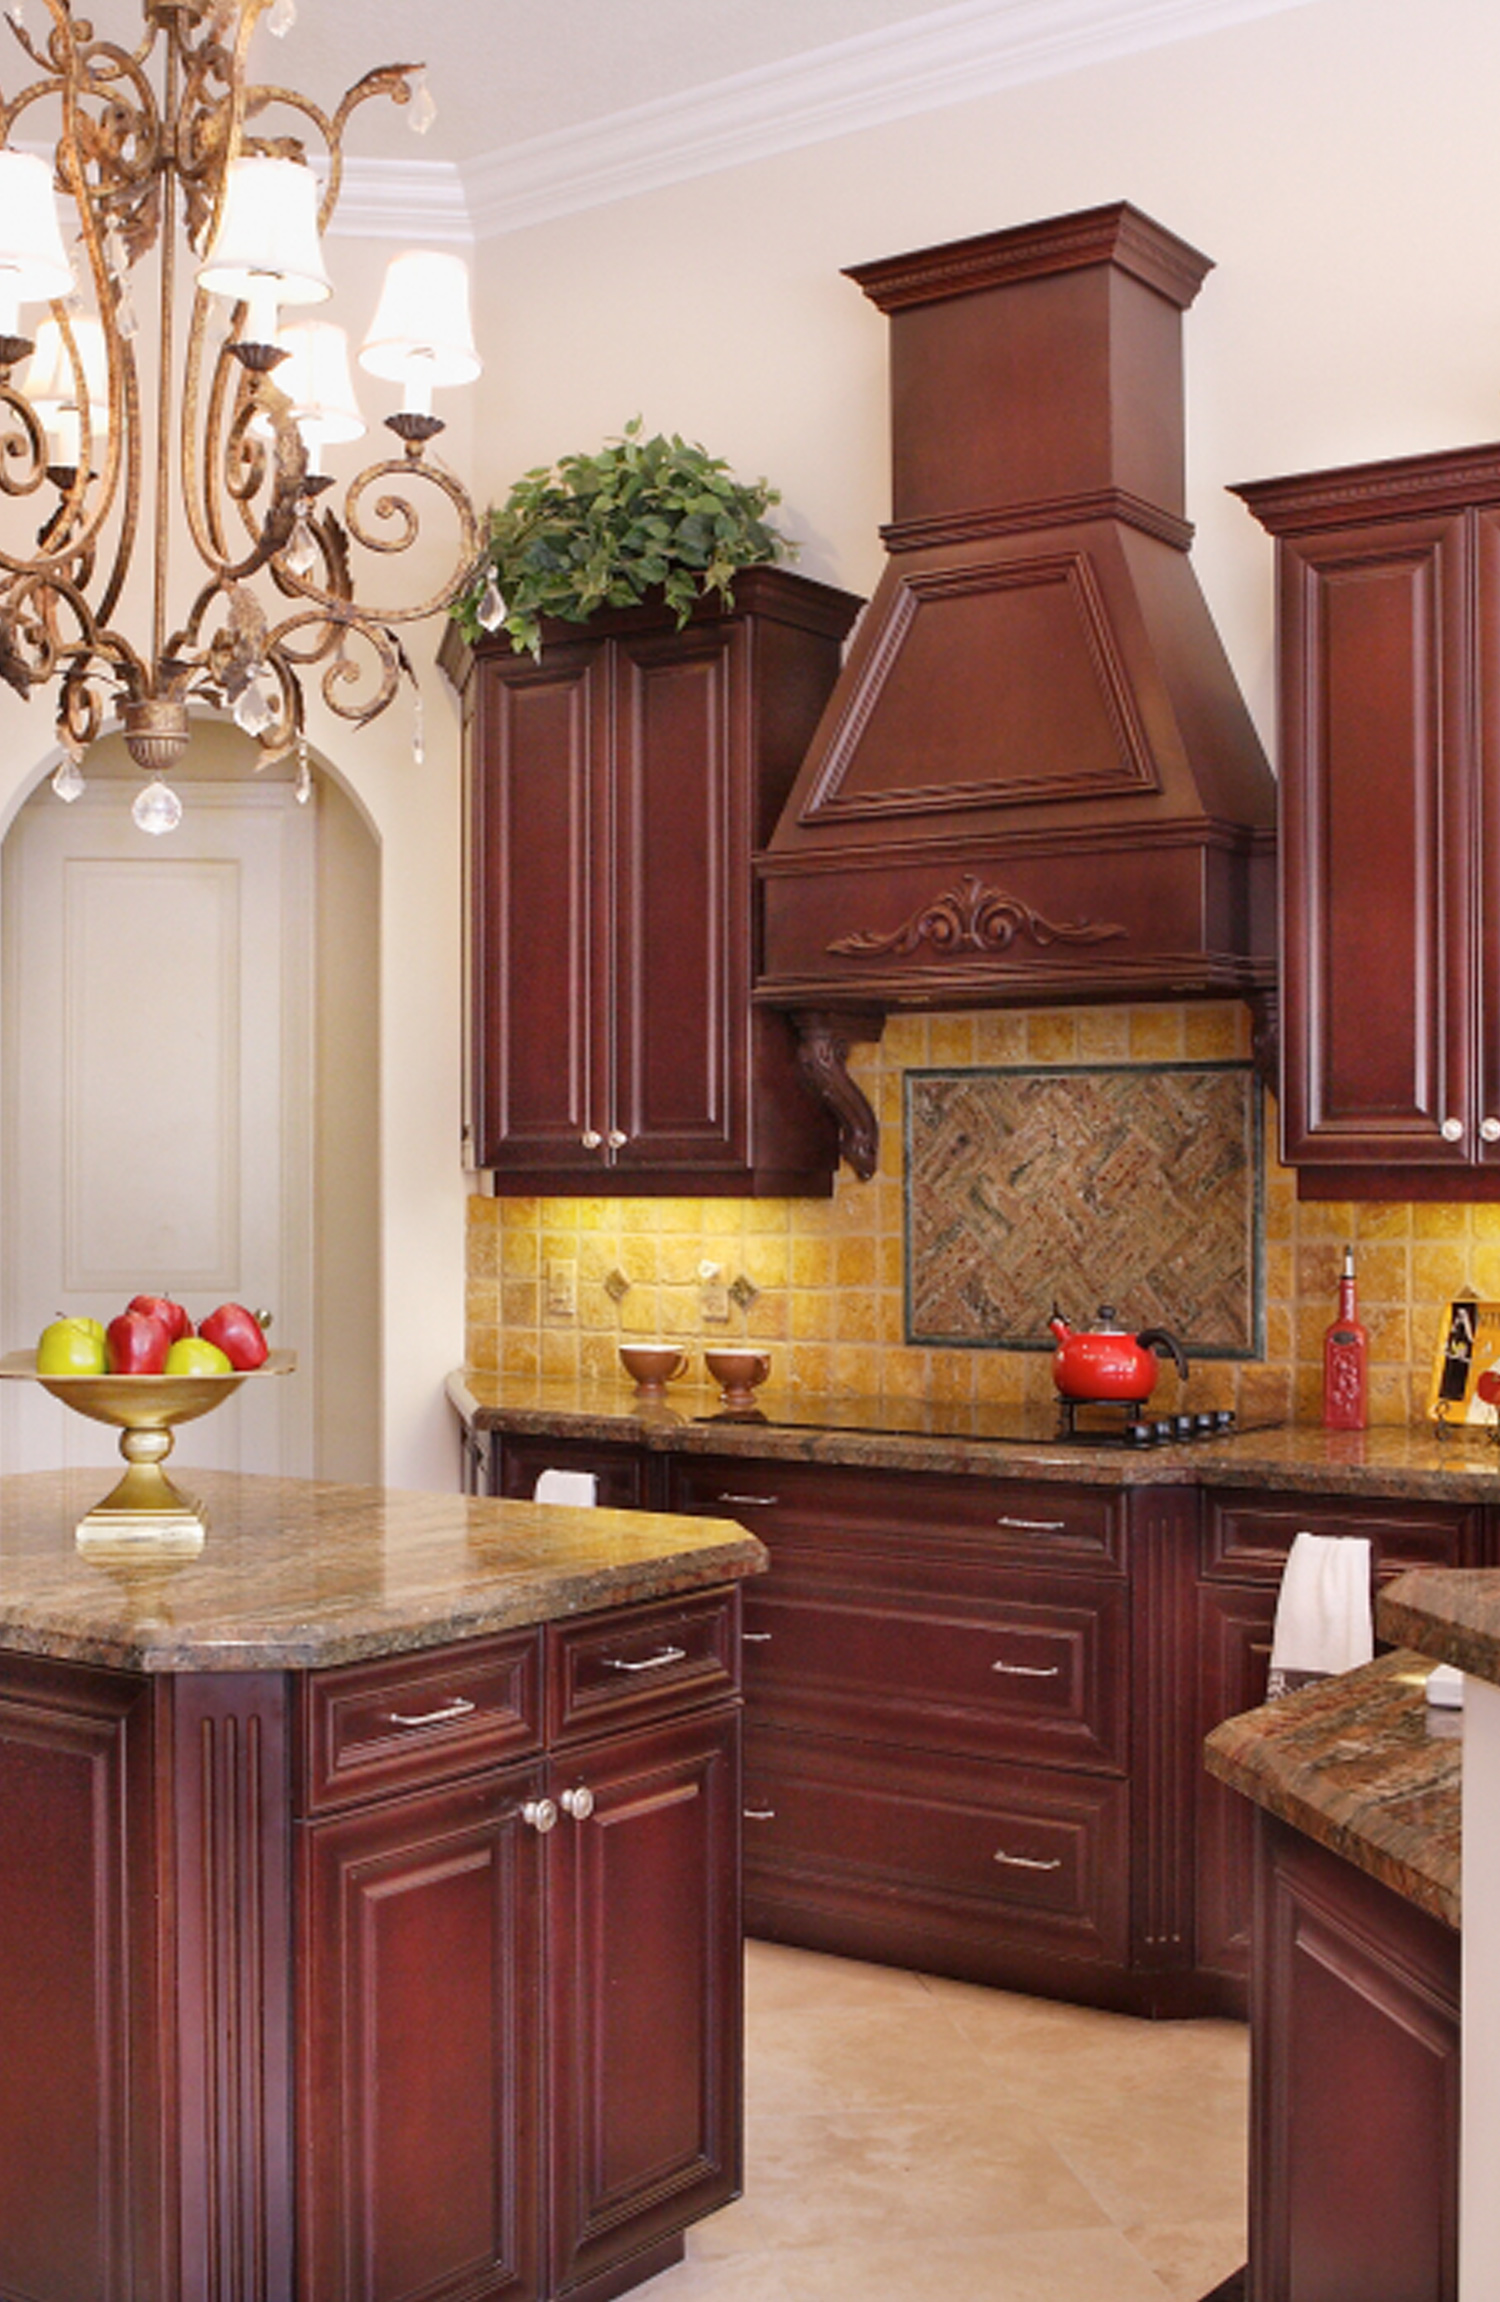 Kitchen home staging project by Captiva Design